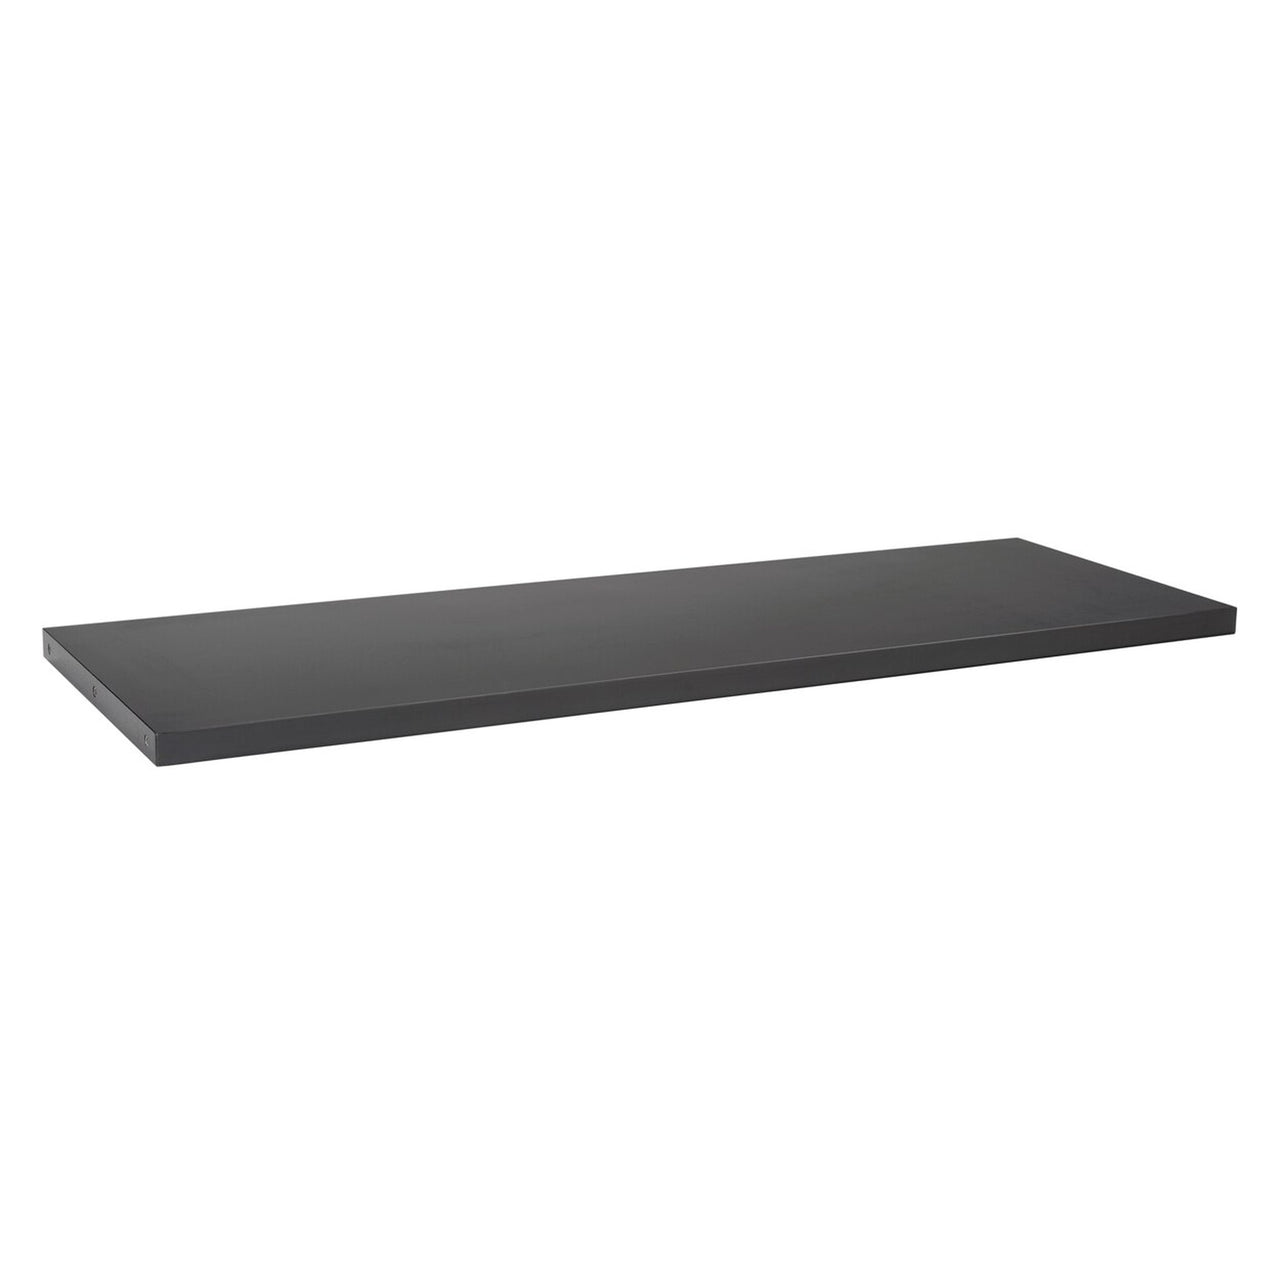 MAXe 30 mm shelf 400 D - 1200 mm bay  1193 W x 30 mm Thick E6412